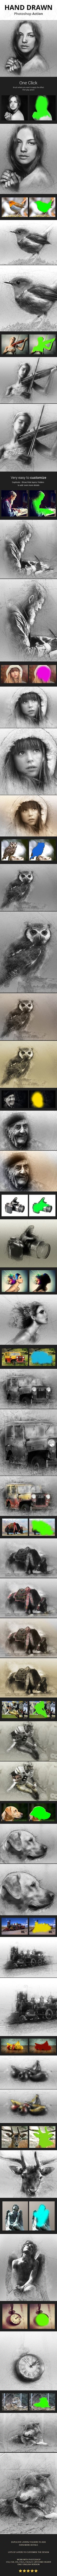 Hand Drawn Photoshop Action - Photo Effects Actions